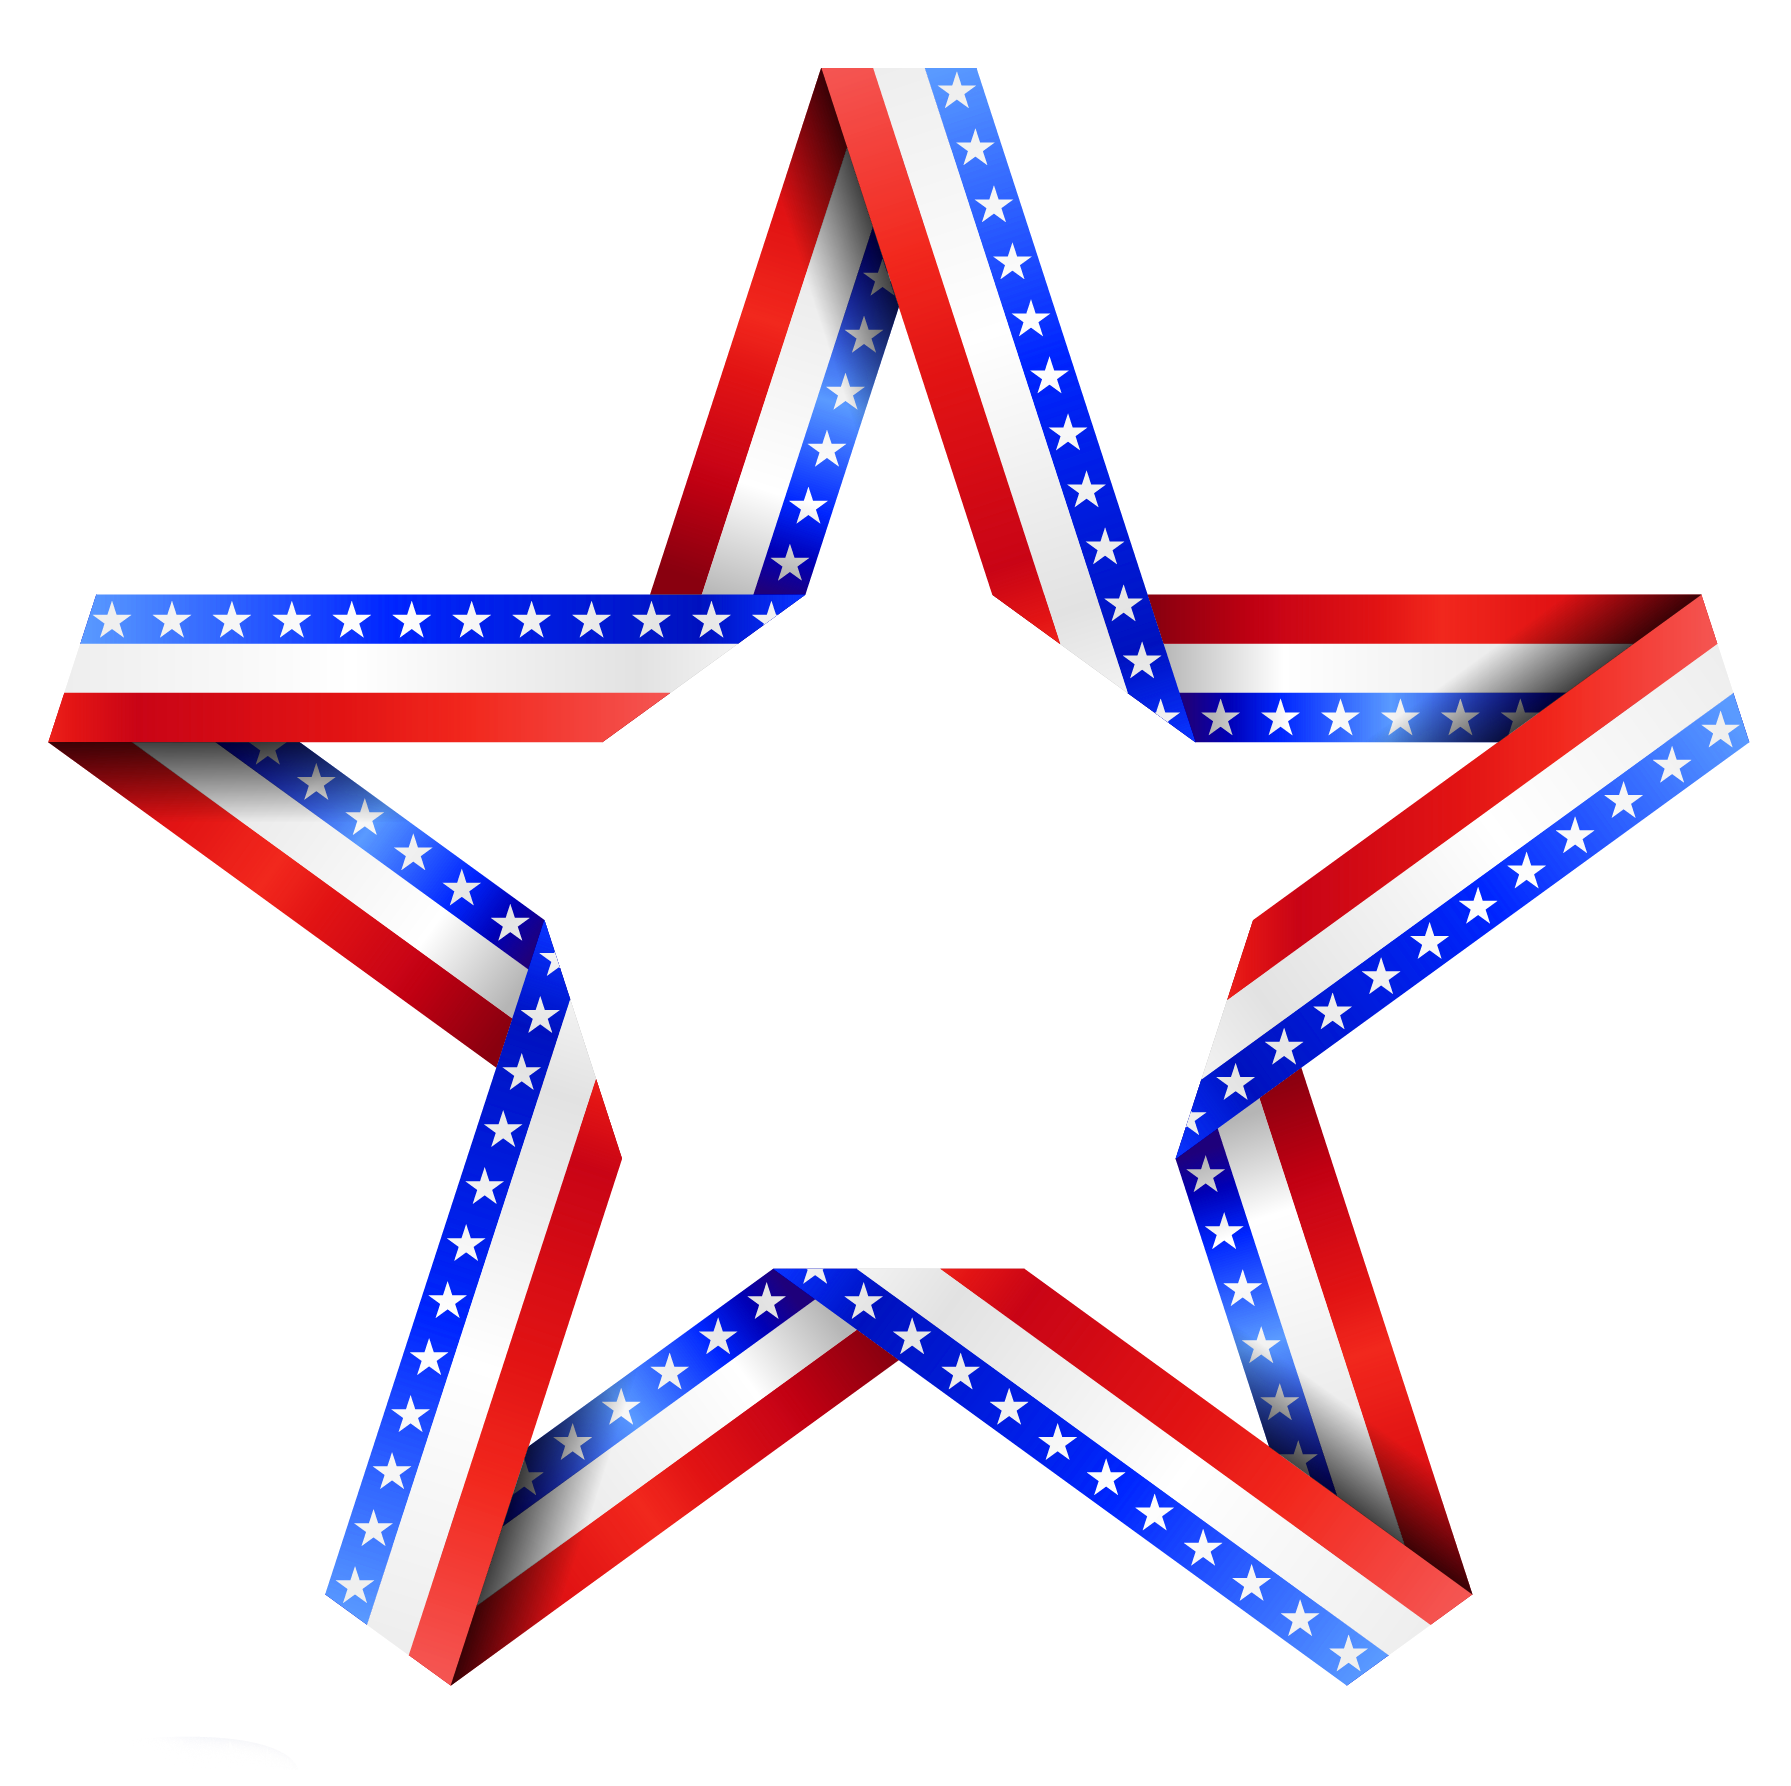 Star crossed clipart graphic royalty free download American Star Decor PNG Clipart | CLIPART | Pinterest | Clip art graphic royalty free download